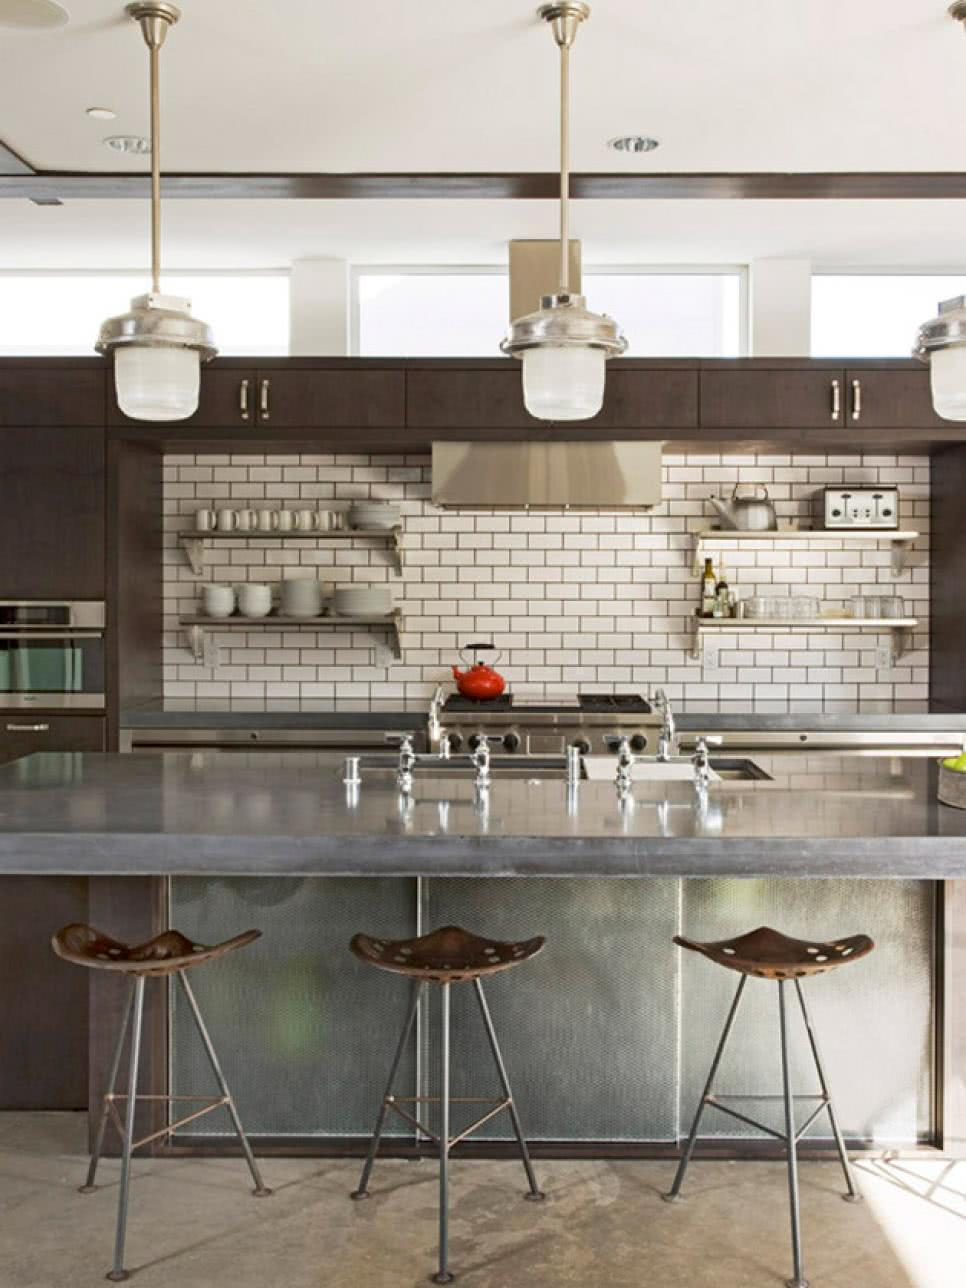 Subway tiles only in one part of the kitchen